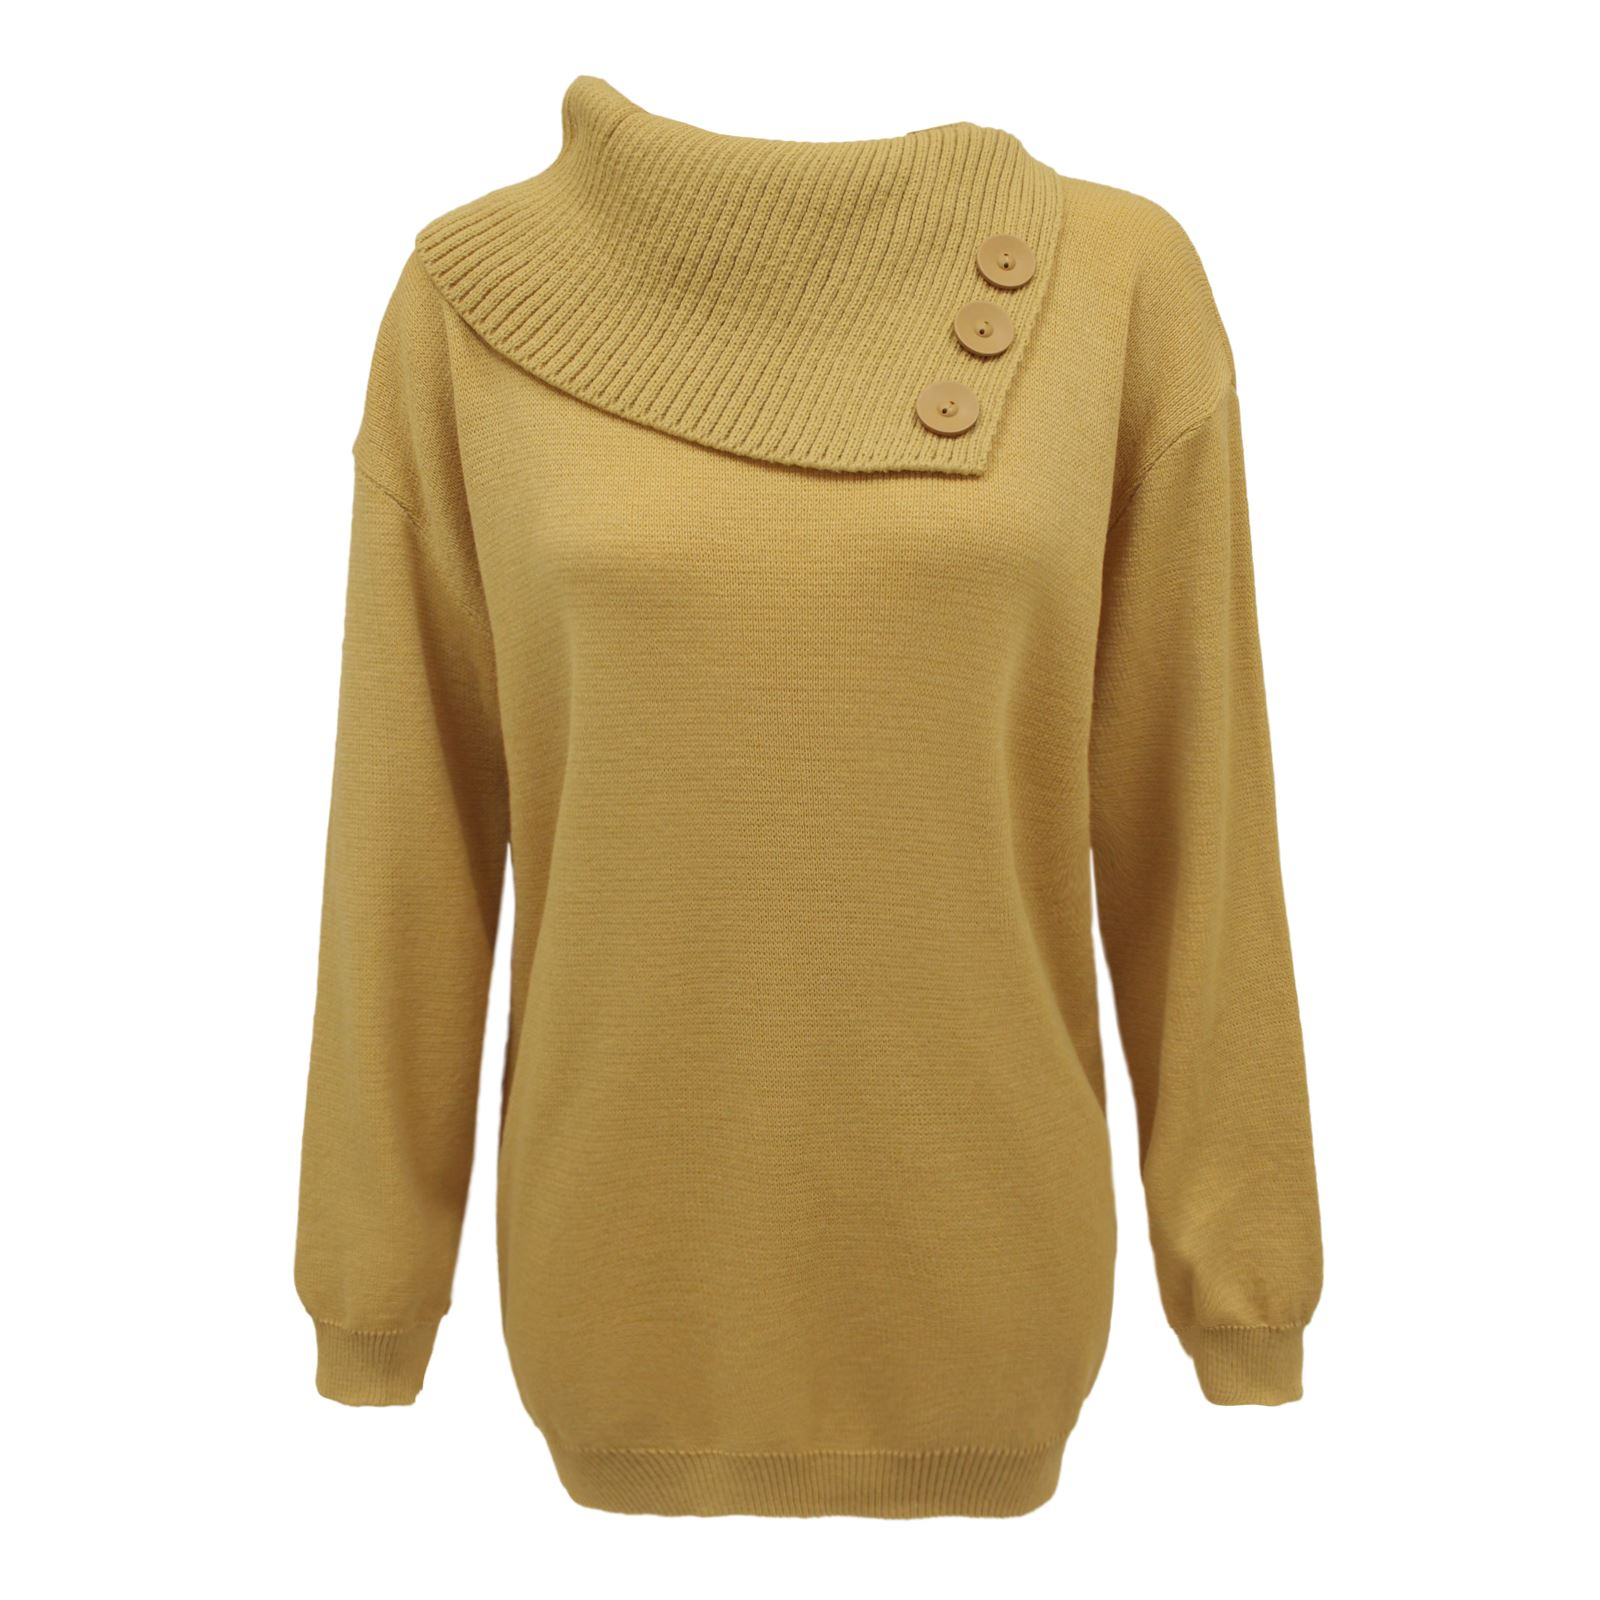 Find great deals on eBay for womens plus size jumpers. Shop with confidence.